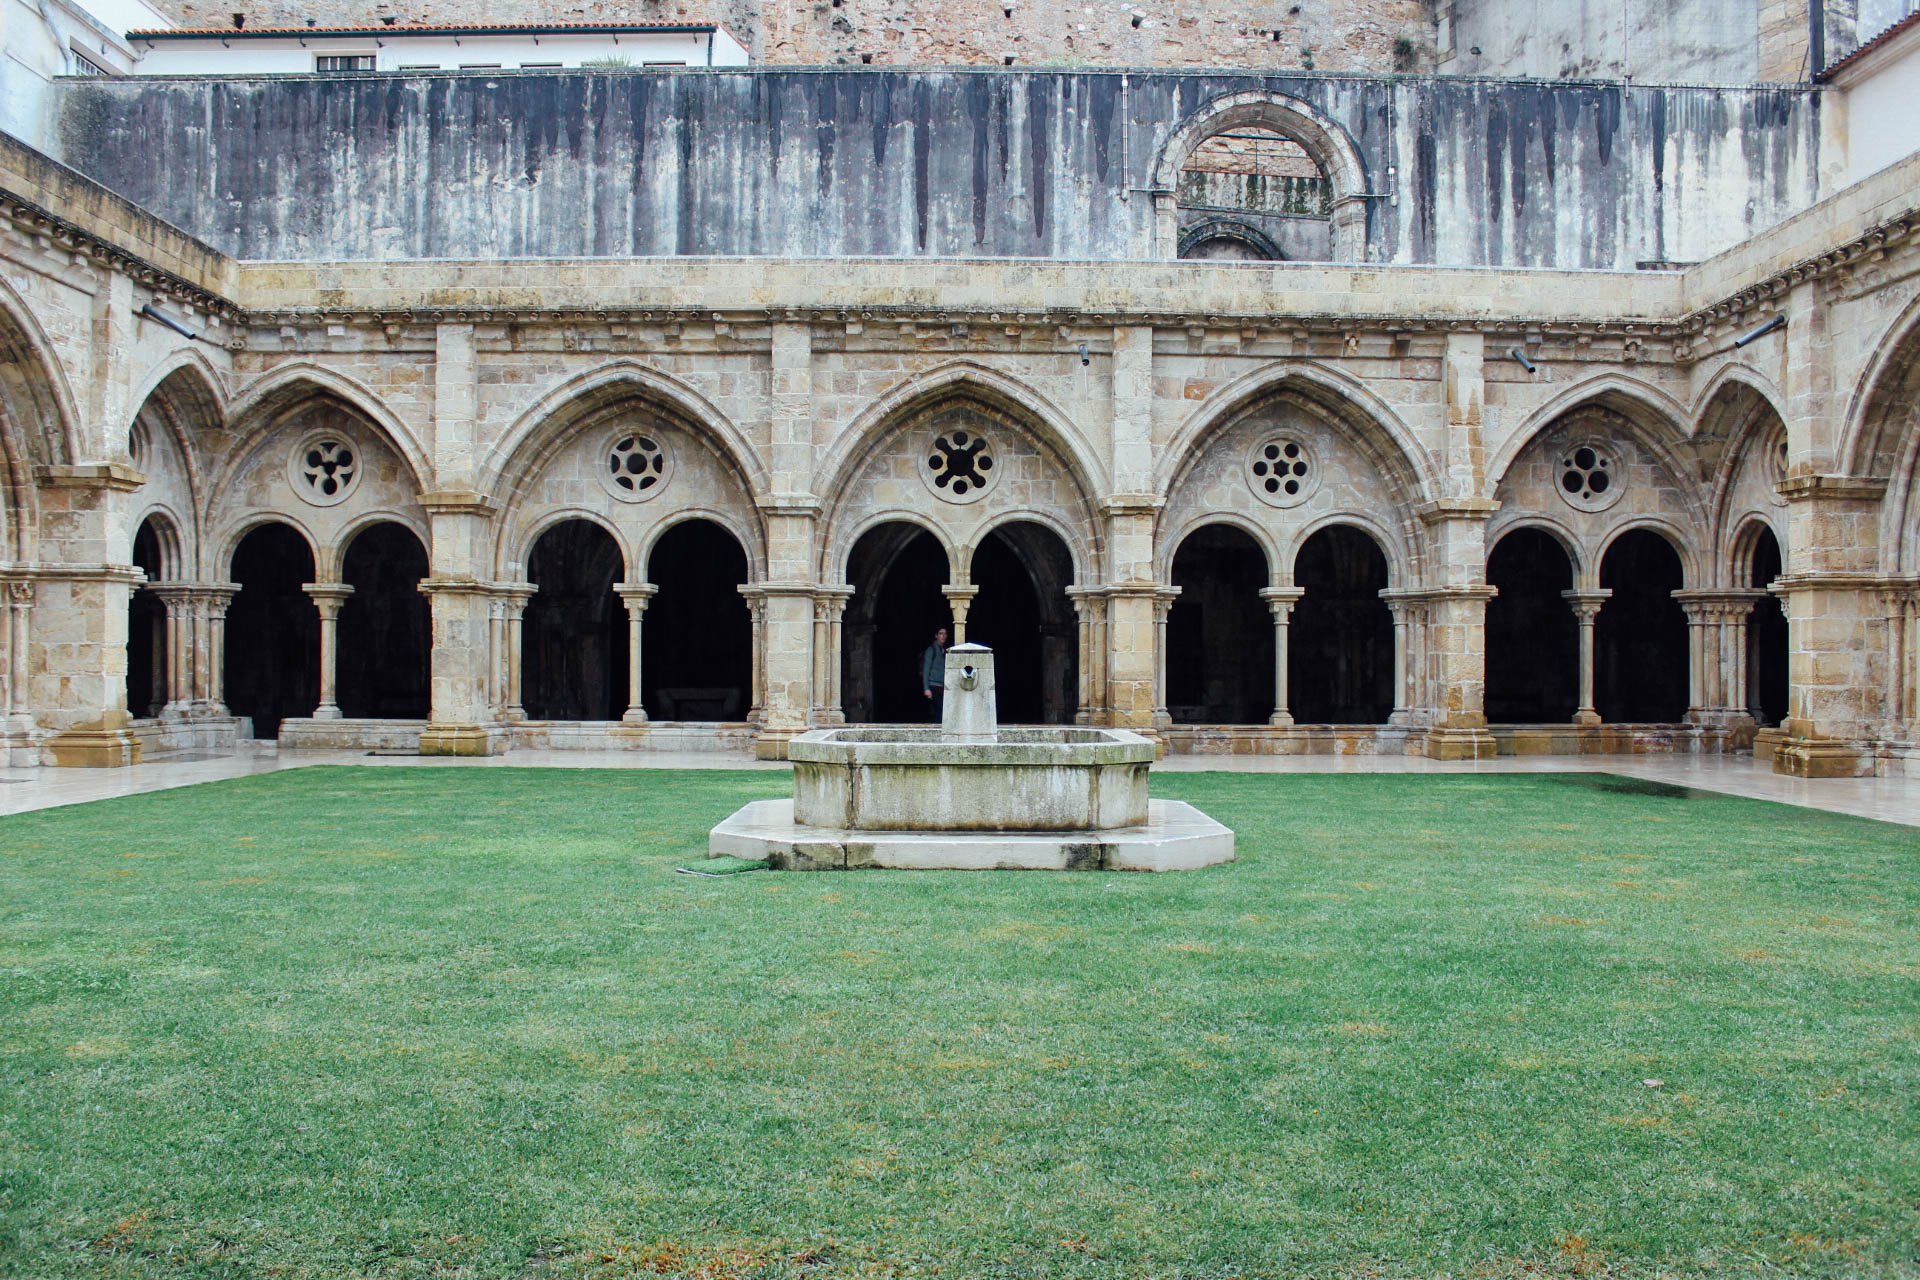 The old cathedral in Coimbra